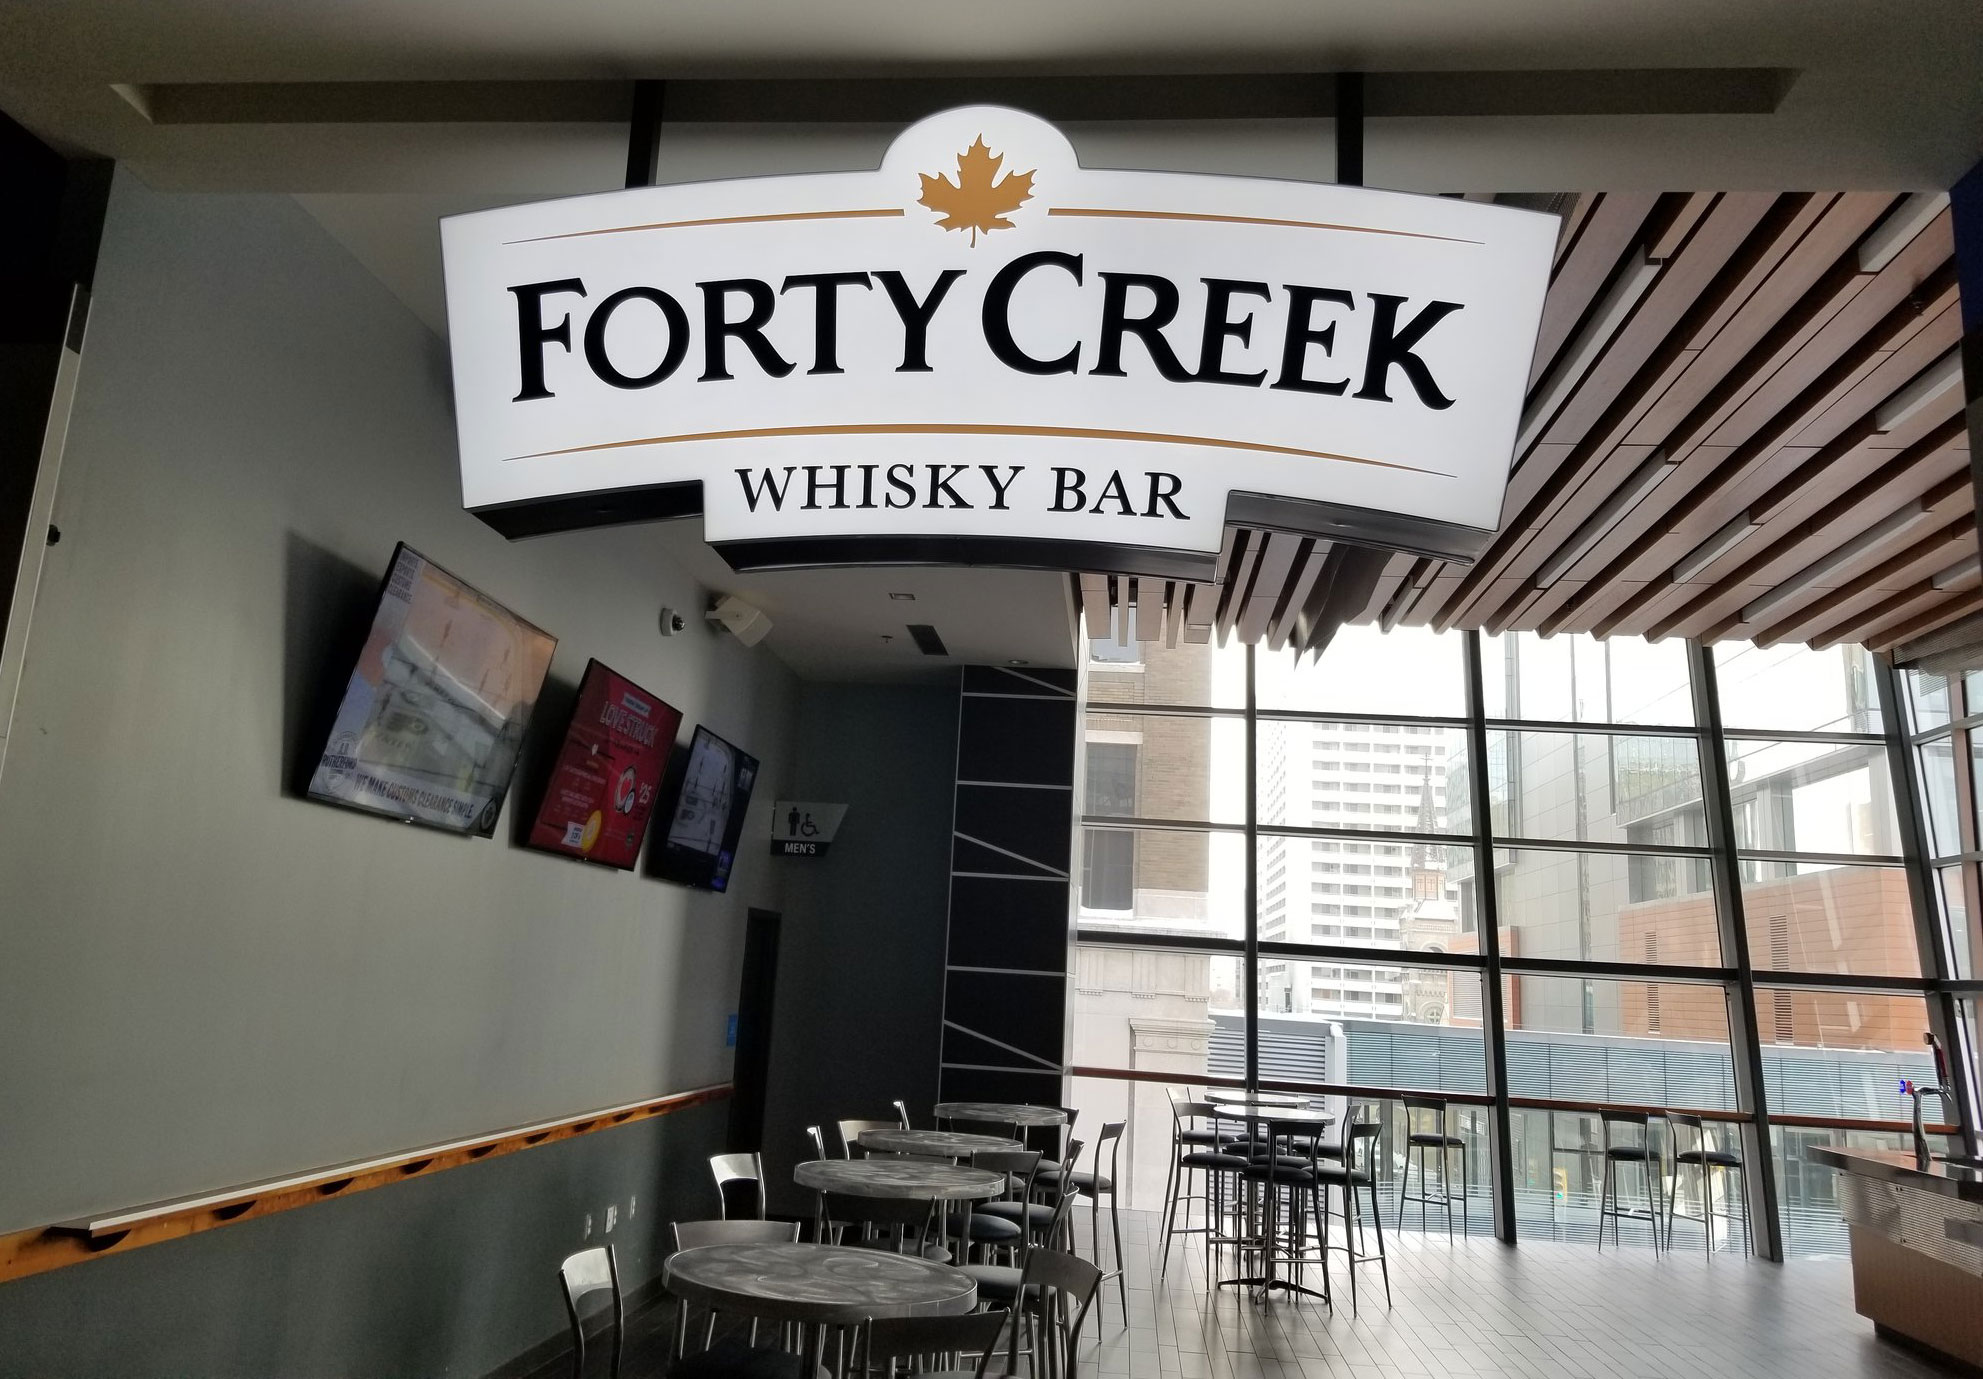 Forty Creek Whisky Bar